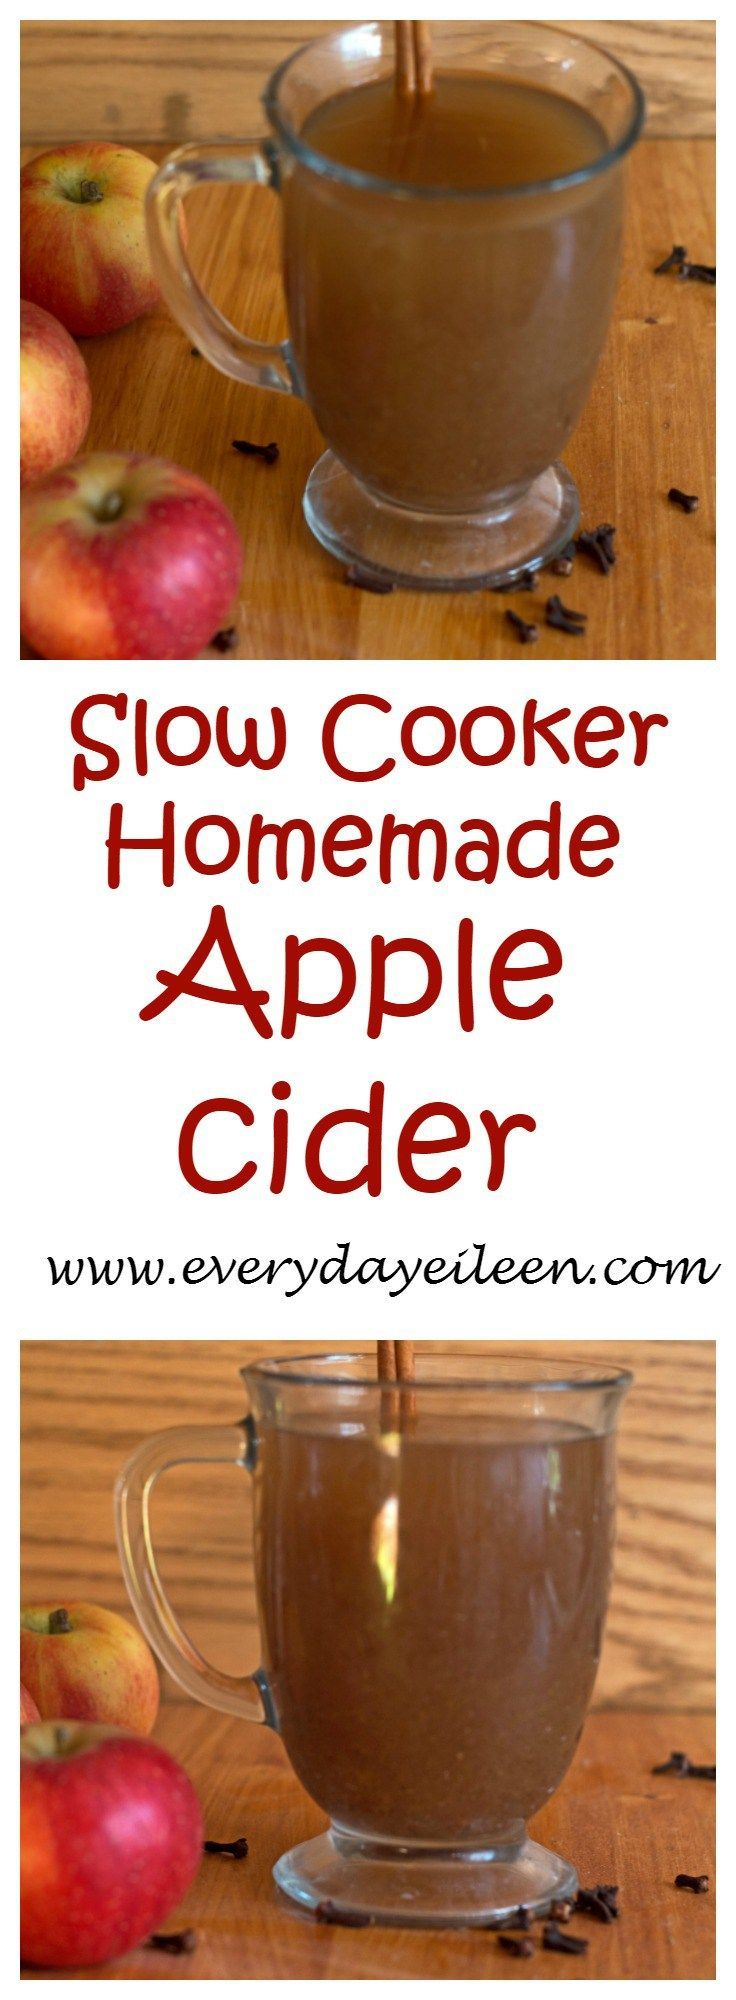 slow-cooker-homemade-apple-cider super easy to prepare..quarter all the fruit and slow cook the fruit.  After cooked and sieve the fruit. enjoy the cider and the adults can add in bourbon.  Enjoy this cider in your sangria and doughnut recipe.